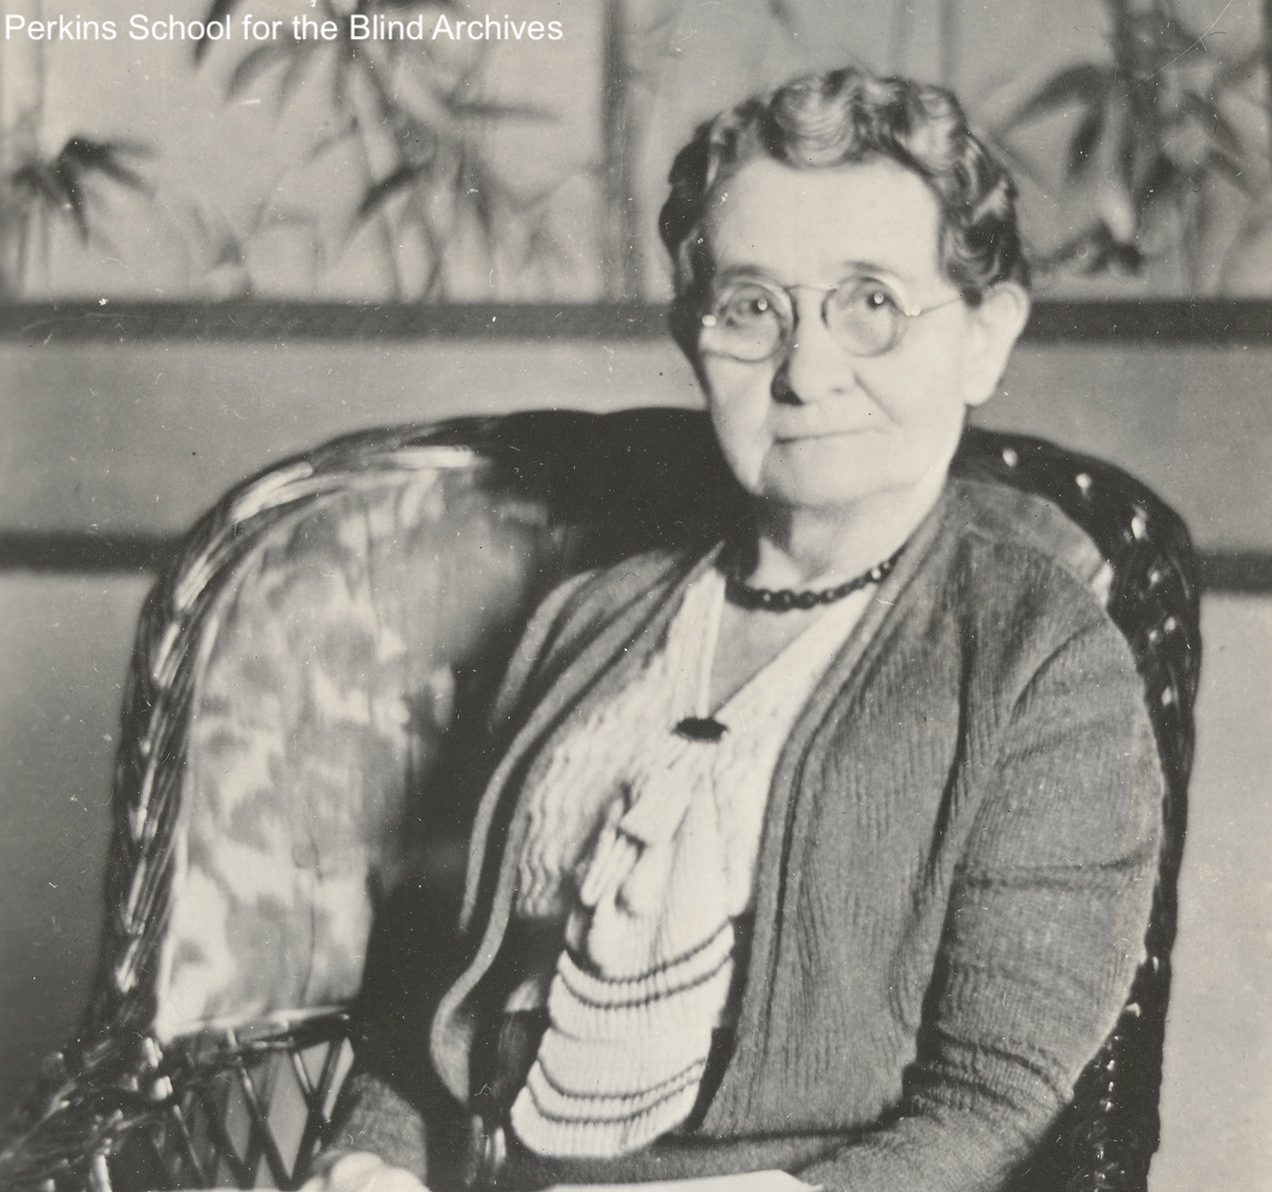 Seated portrait of Jessica Langworthy, circa 1936. There is a Japanese style artwork showing bamboo in the background. She is wearing a sweater and blouse. Langworthy has round wire-framed glasses on. Her hair is styled in finger waves.